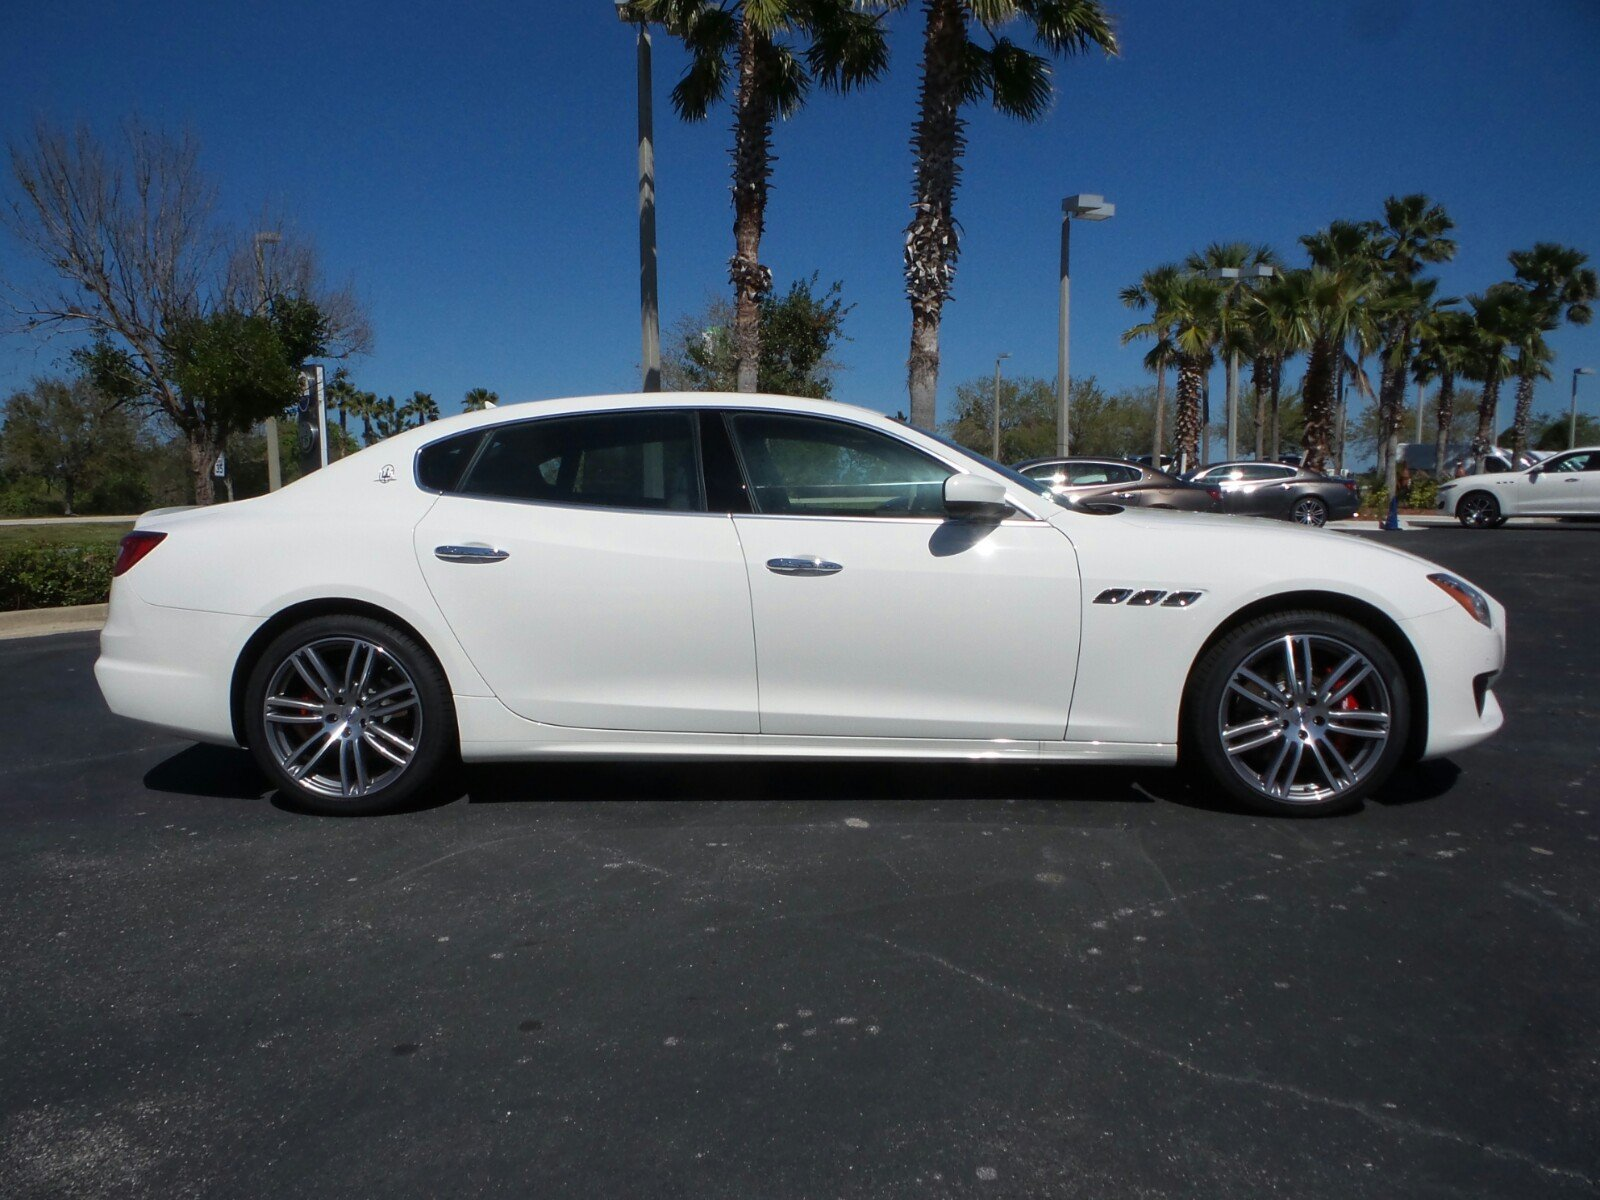 new 2017 maserati quattroporte s gransport 4dr car in daytona beach